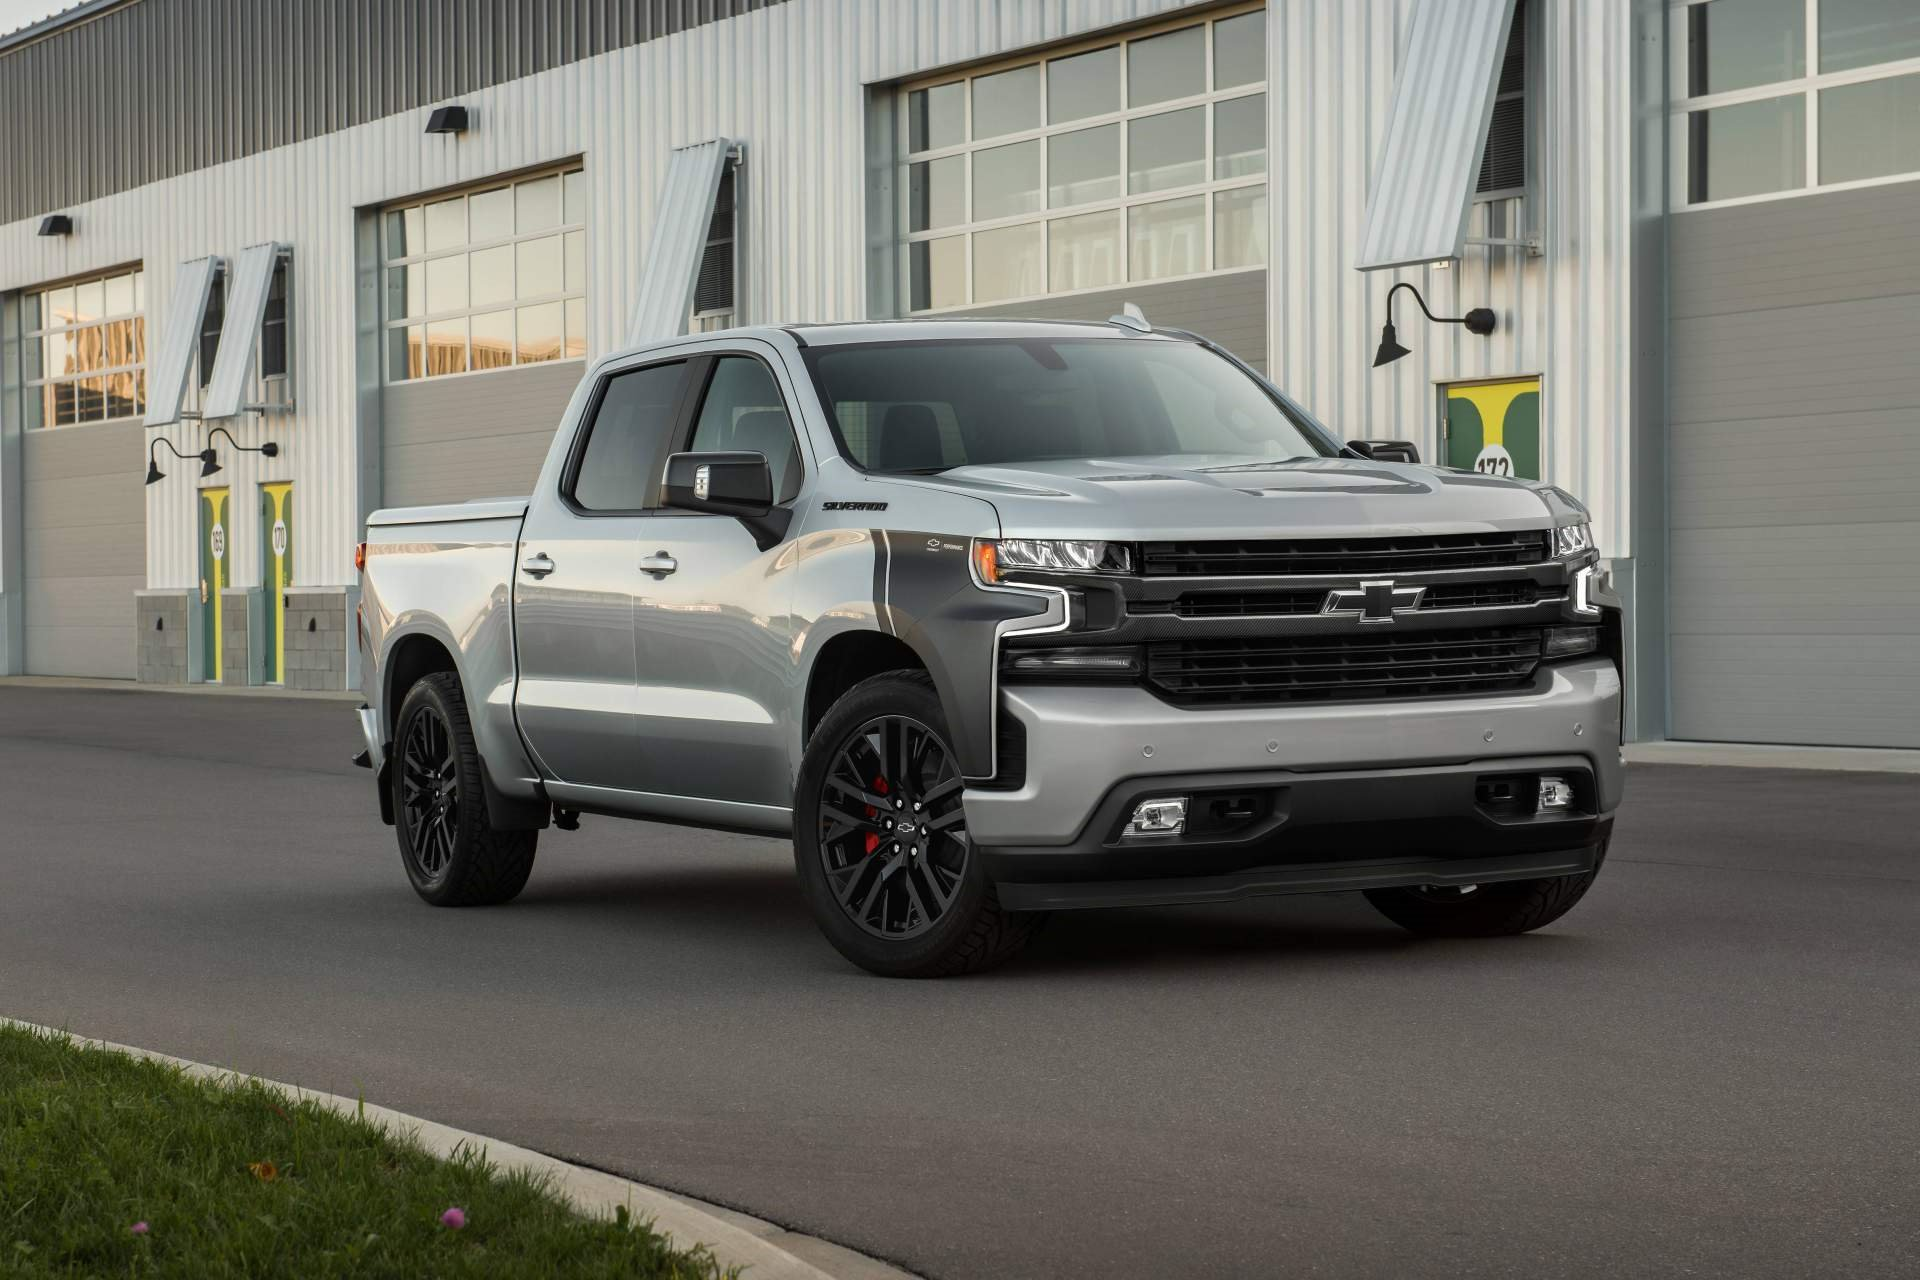 New 2019 Chevrolet-Silverado 1500 LD Custom Silverado 1500 LD Custom for sale $40,300 at M and V Leasing in Brooklyn NY 11223 1